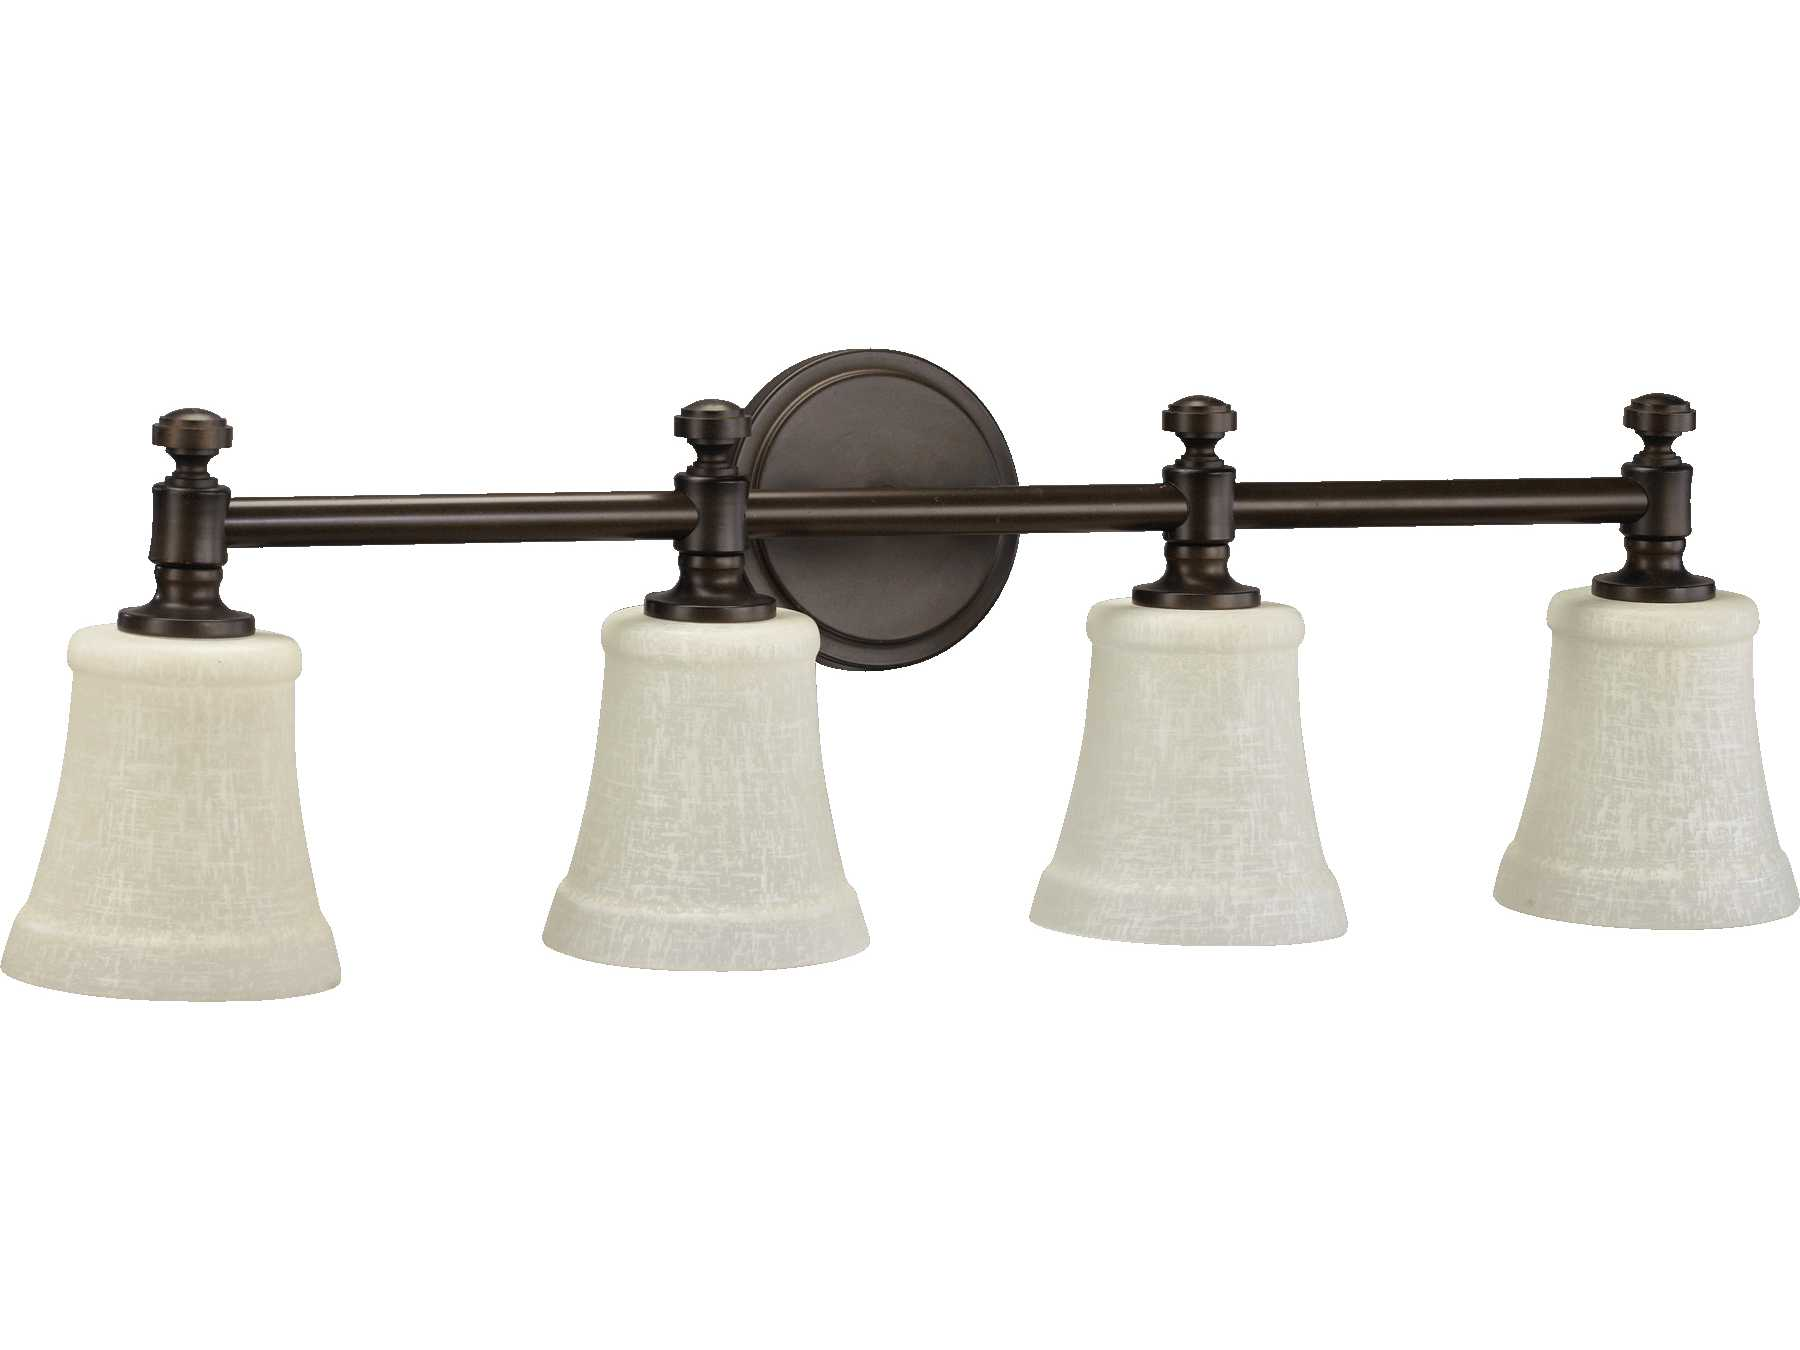 Quorum Vanity Lights : Quorum International Oiled Bronze Four-Lights Vanity Light 5122-4-86